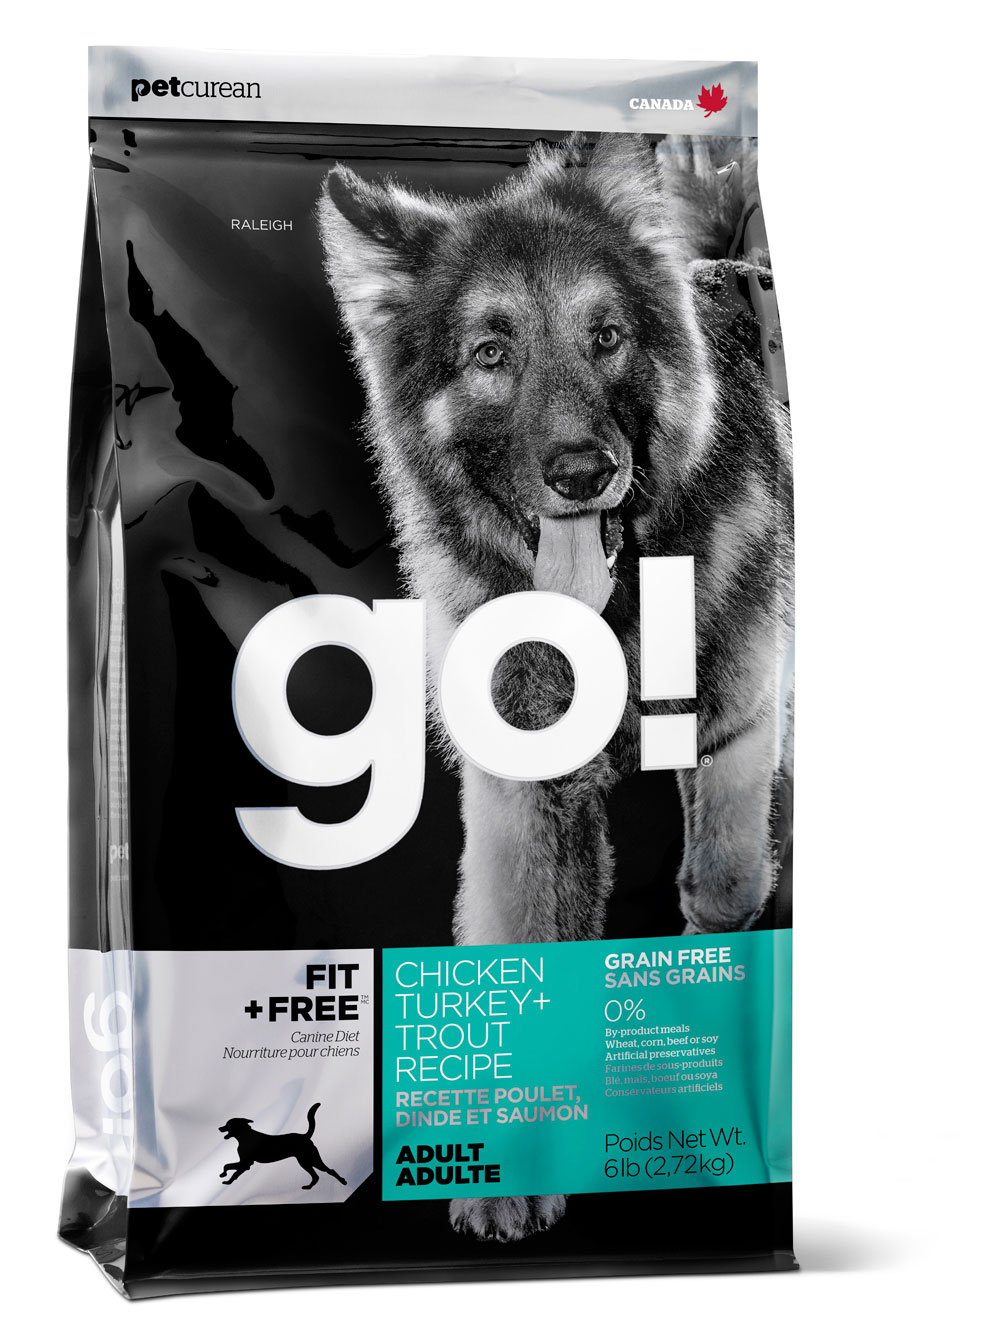 Go! Fit + Free Dry Dog Food